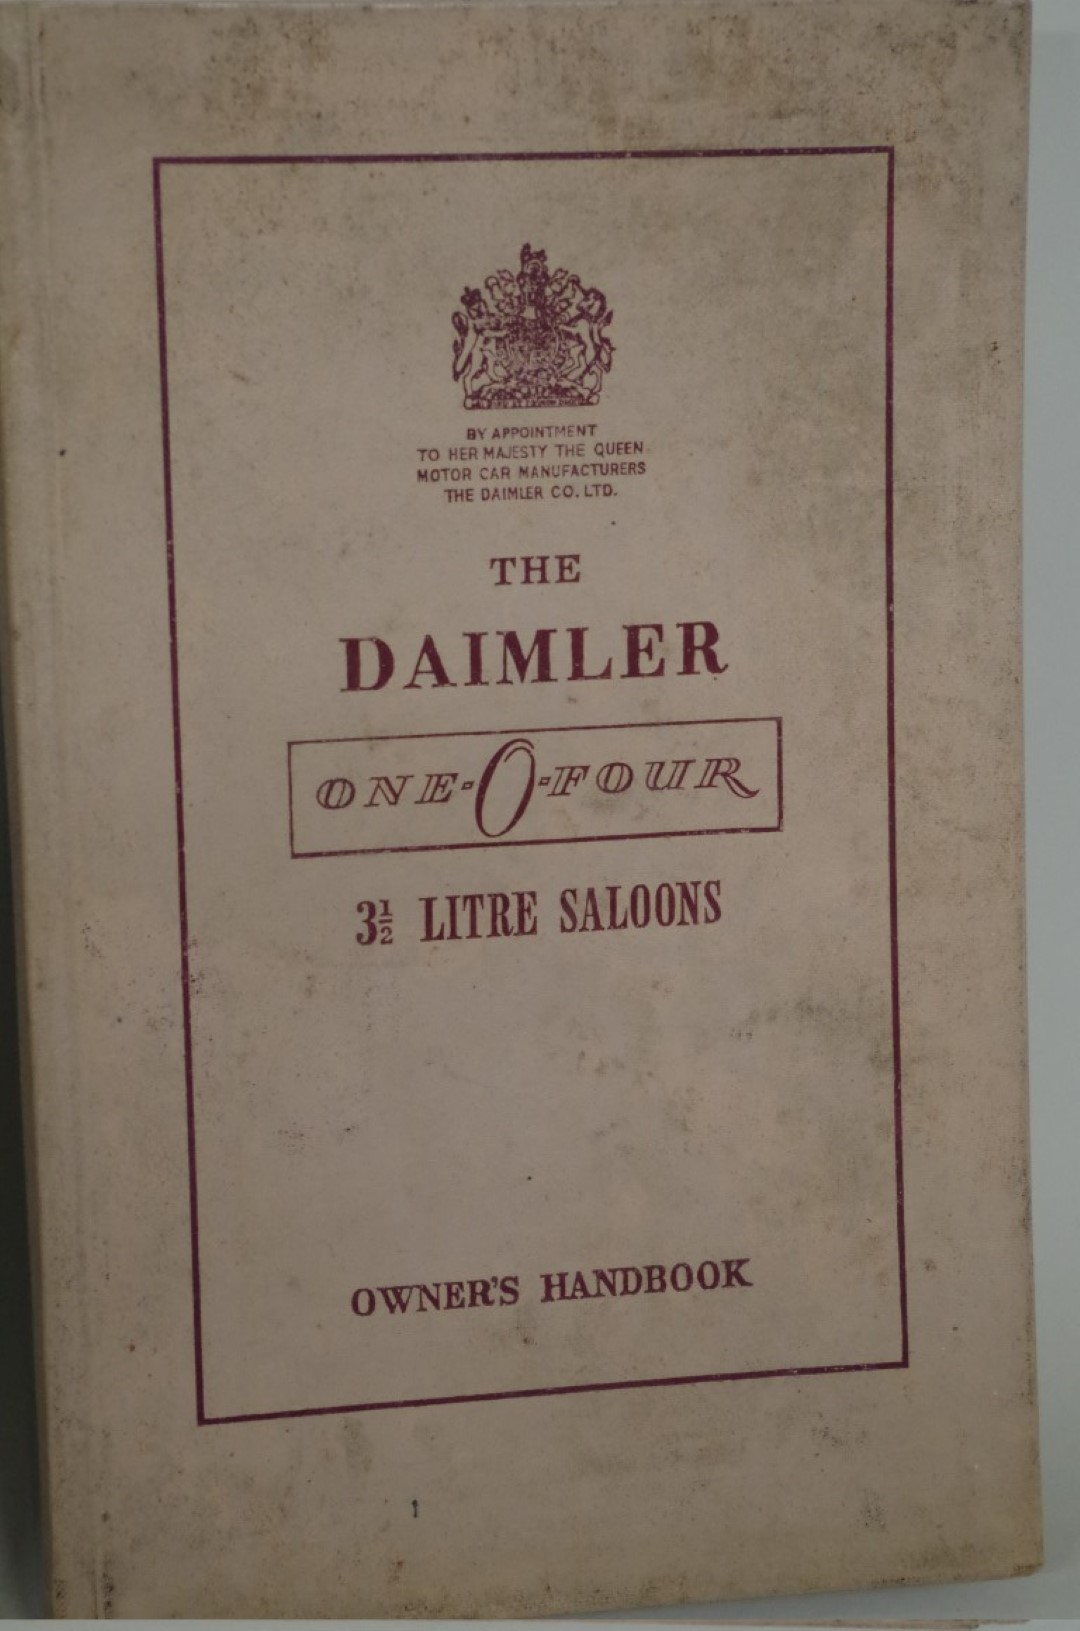 Lot 543 - TwoDaimler Owner's Handbooks, comprising: 'Conquest 100'; and 'One-O-Four'. (2)